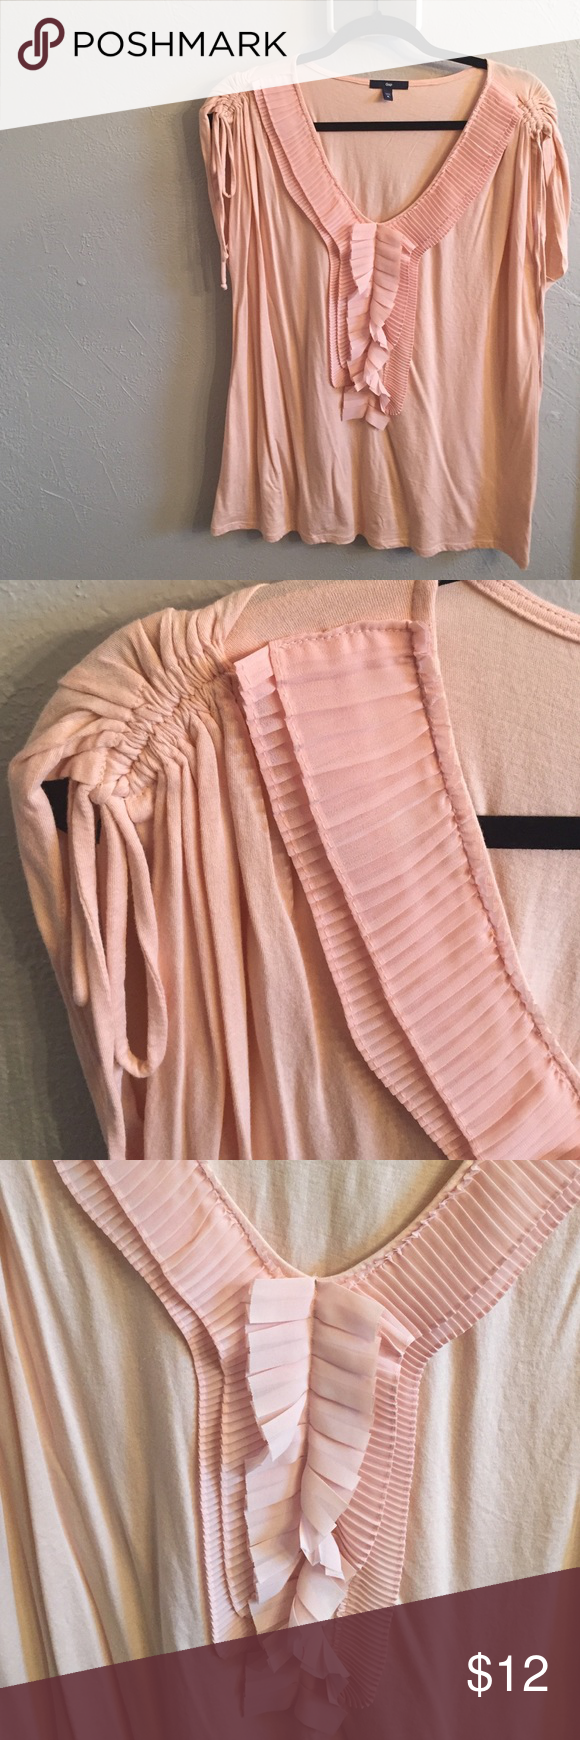 Peach V Neck Embellished Top Peach V Neck Embellished Top. Size XL. Brand Gap. Chiffon pleats GAP Tops Blouses